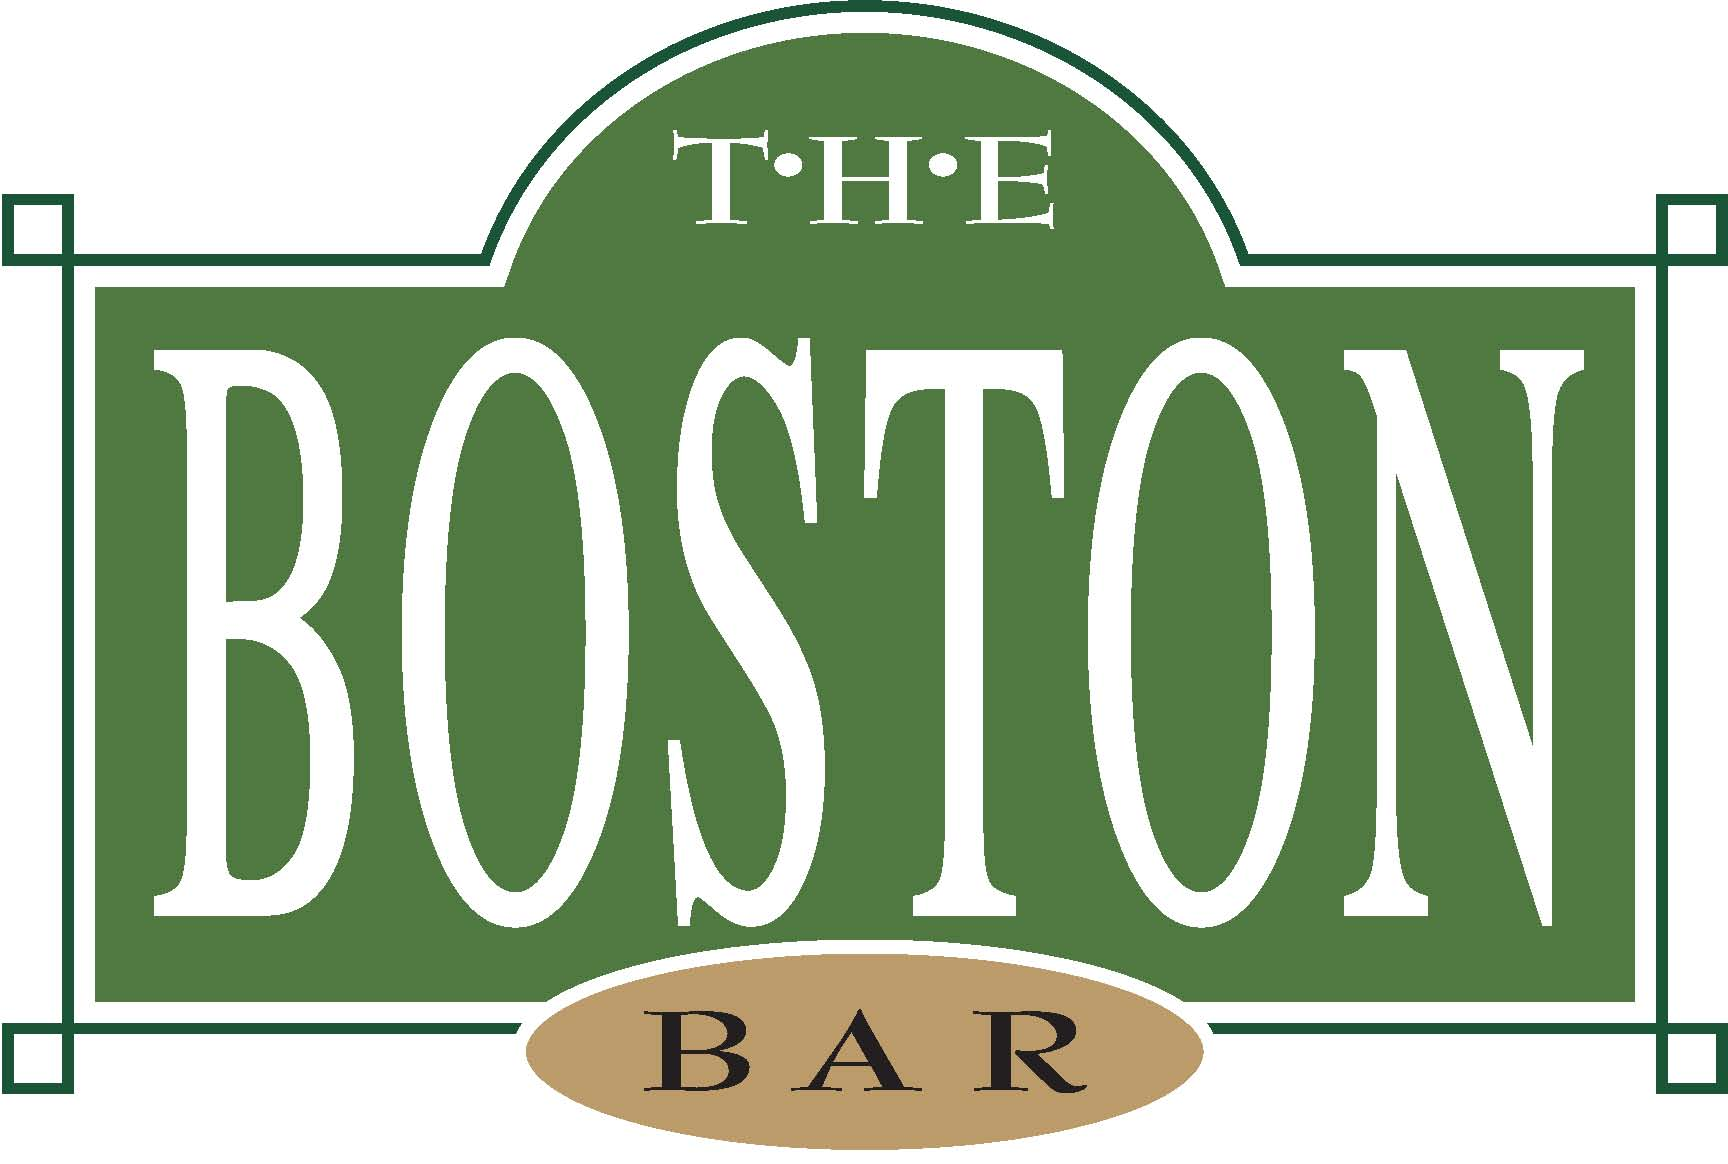 Boston Bar